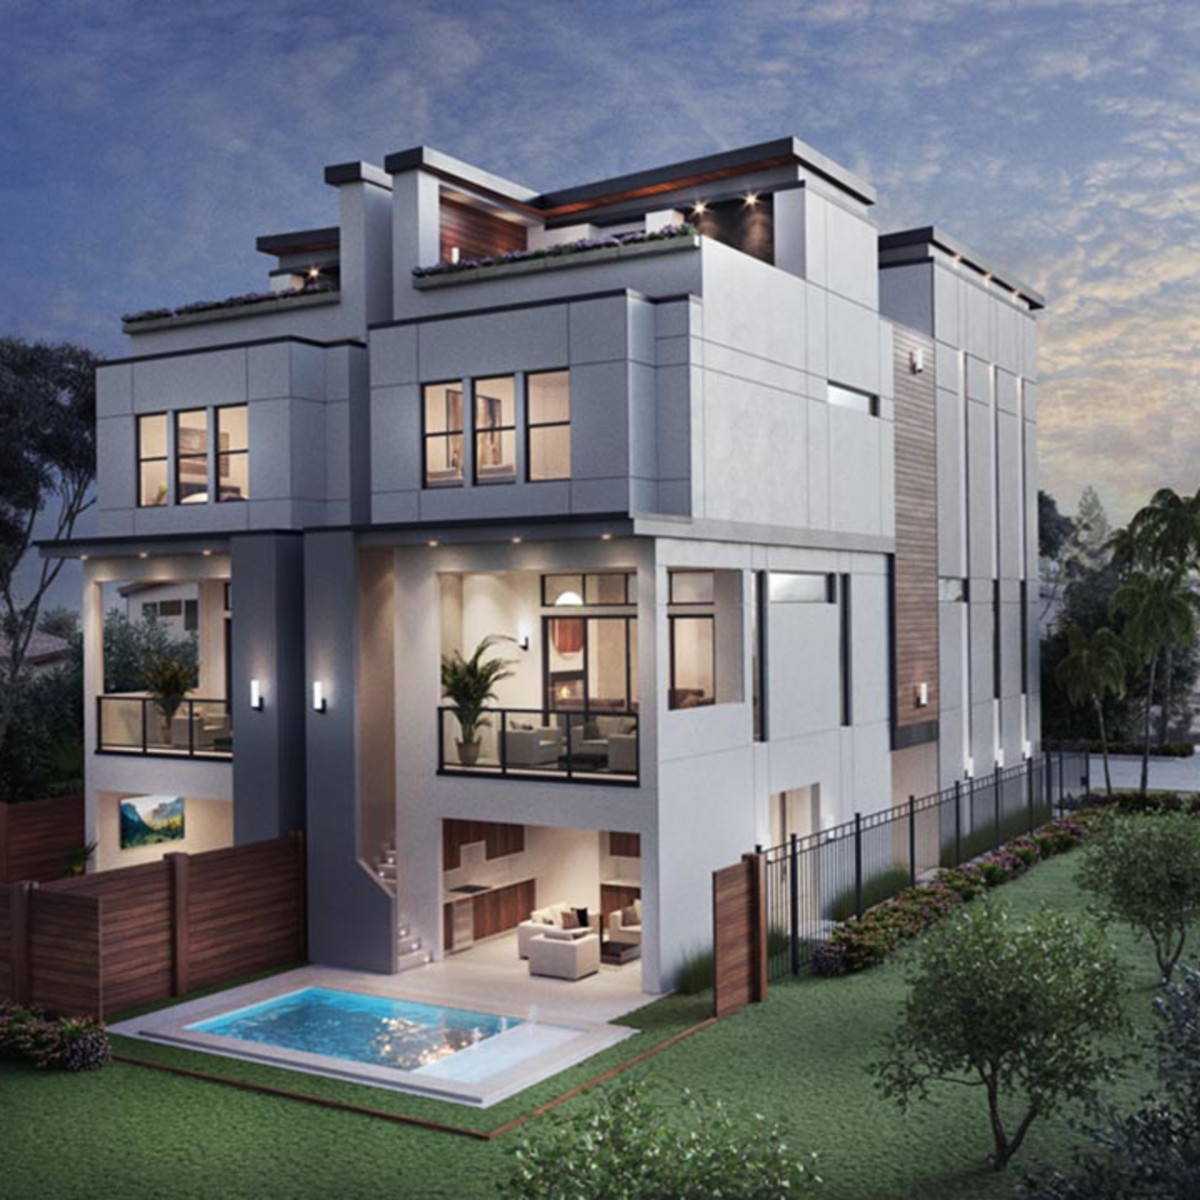 A contemporary single-family custom home under development by Preston Building Partners